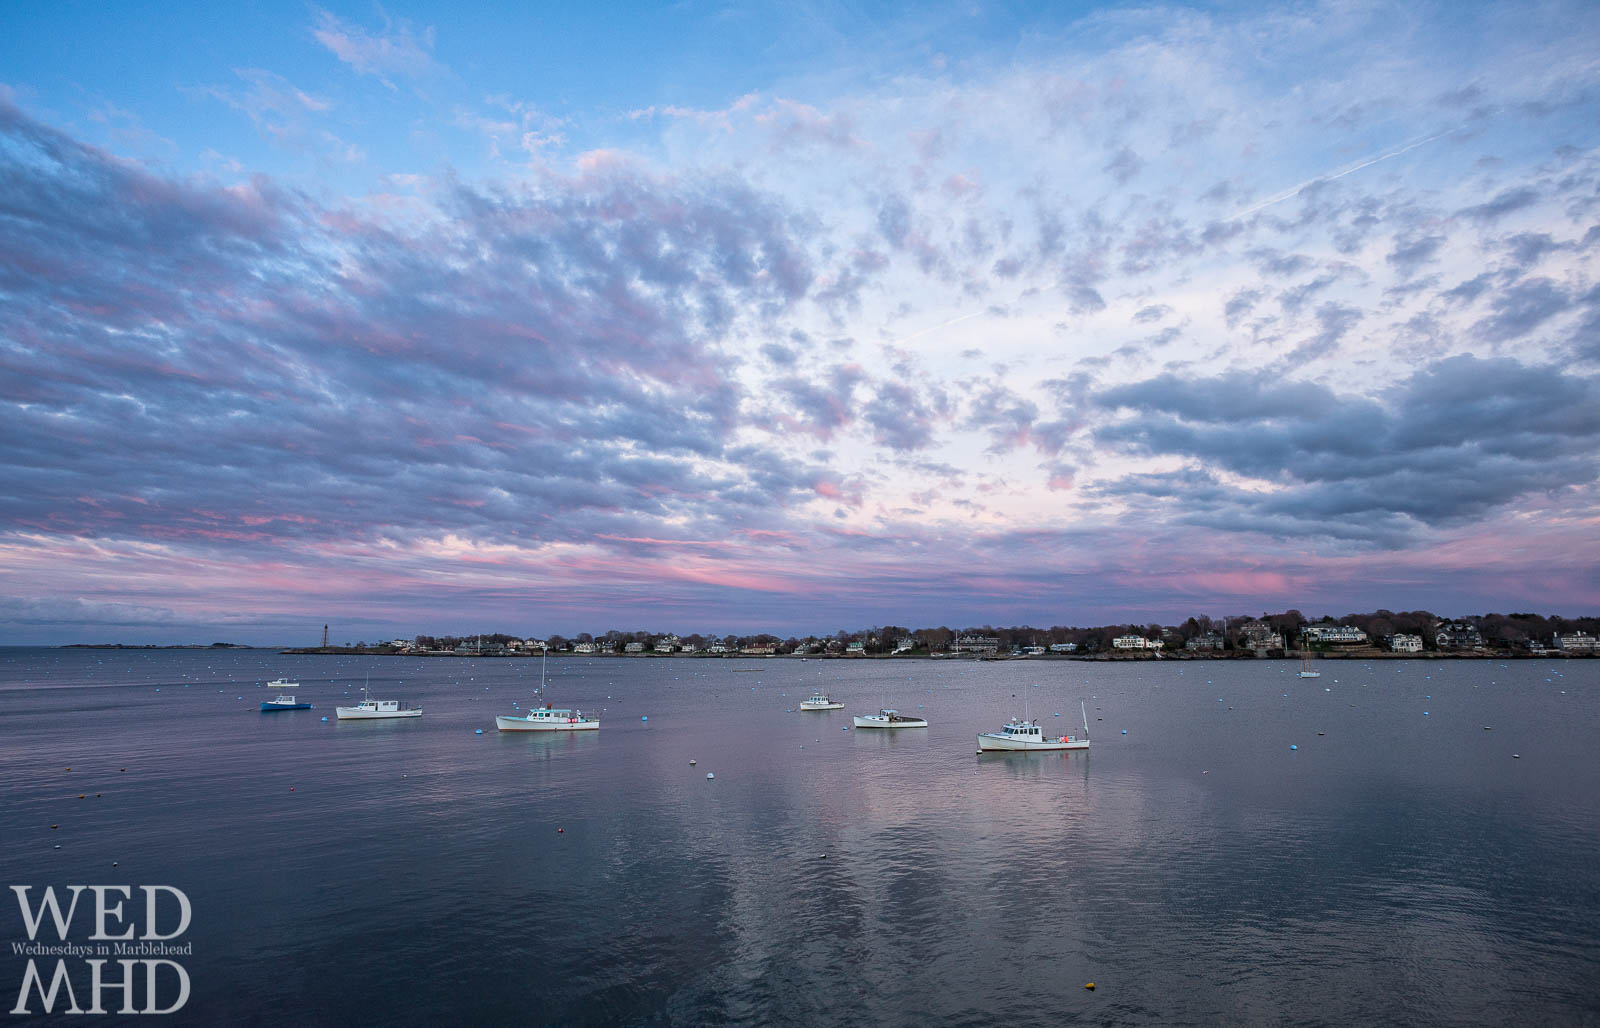 A mid-April sunset shines over the working boats of Marblehead Harbor before the moorings become filled with pleasure boats for the season